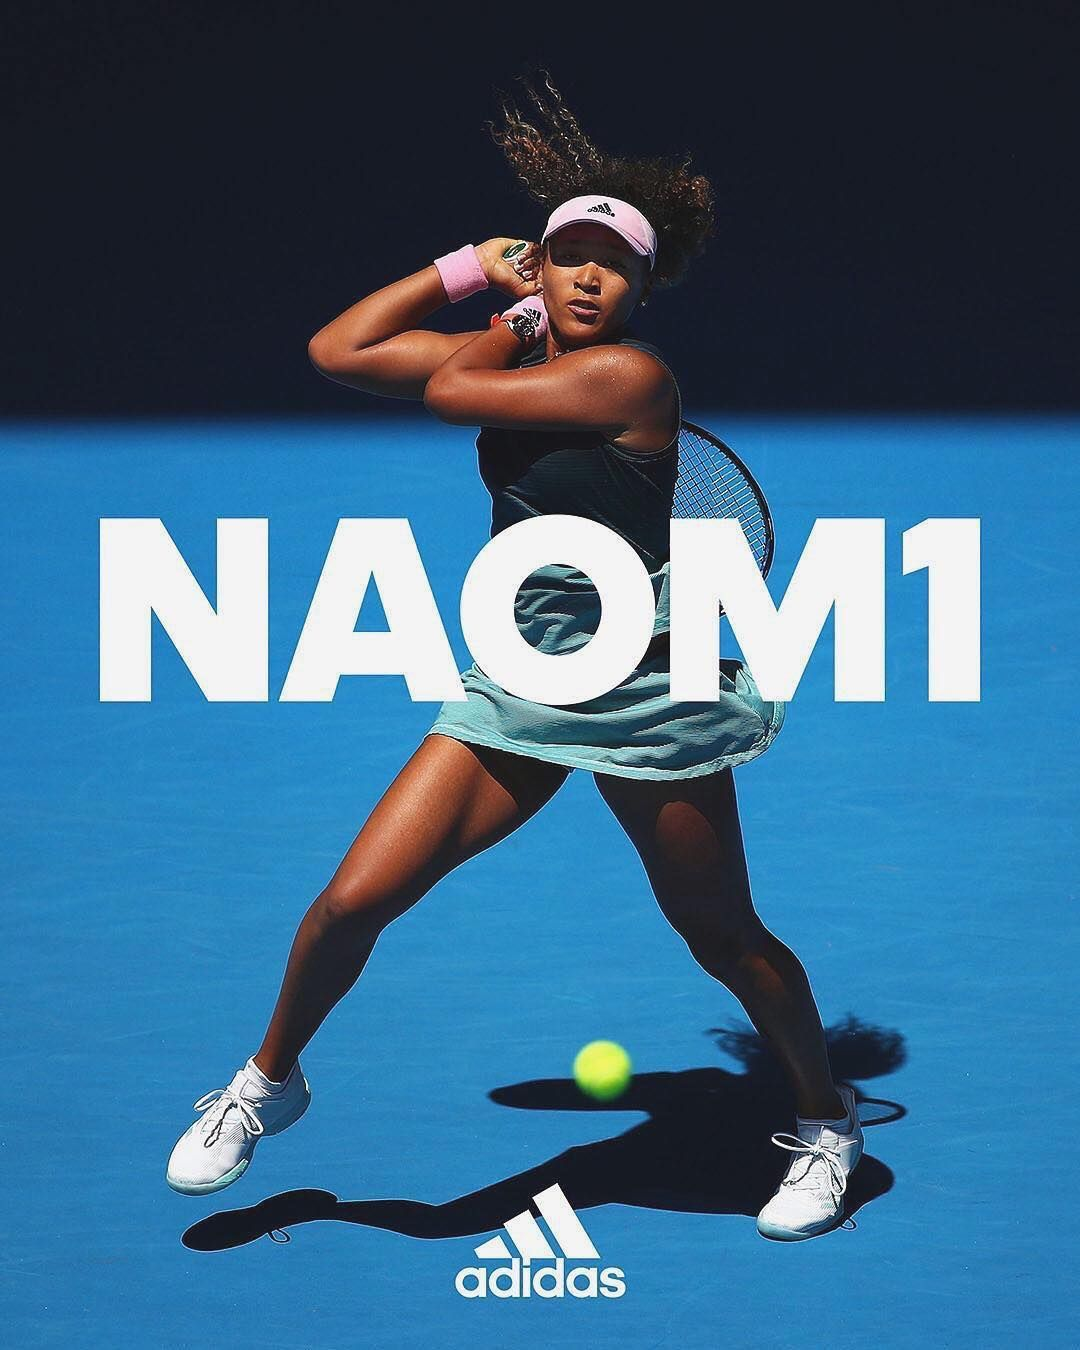 Naomi Osaka On Instagram 1 This Is Simply Just An Unbelievable Achievement For This Young Talented Legend Who Just Saved Tenni Osaka Tennis Tennis Workout